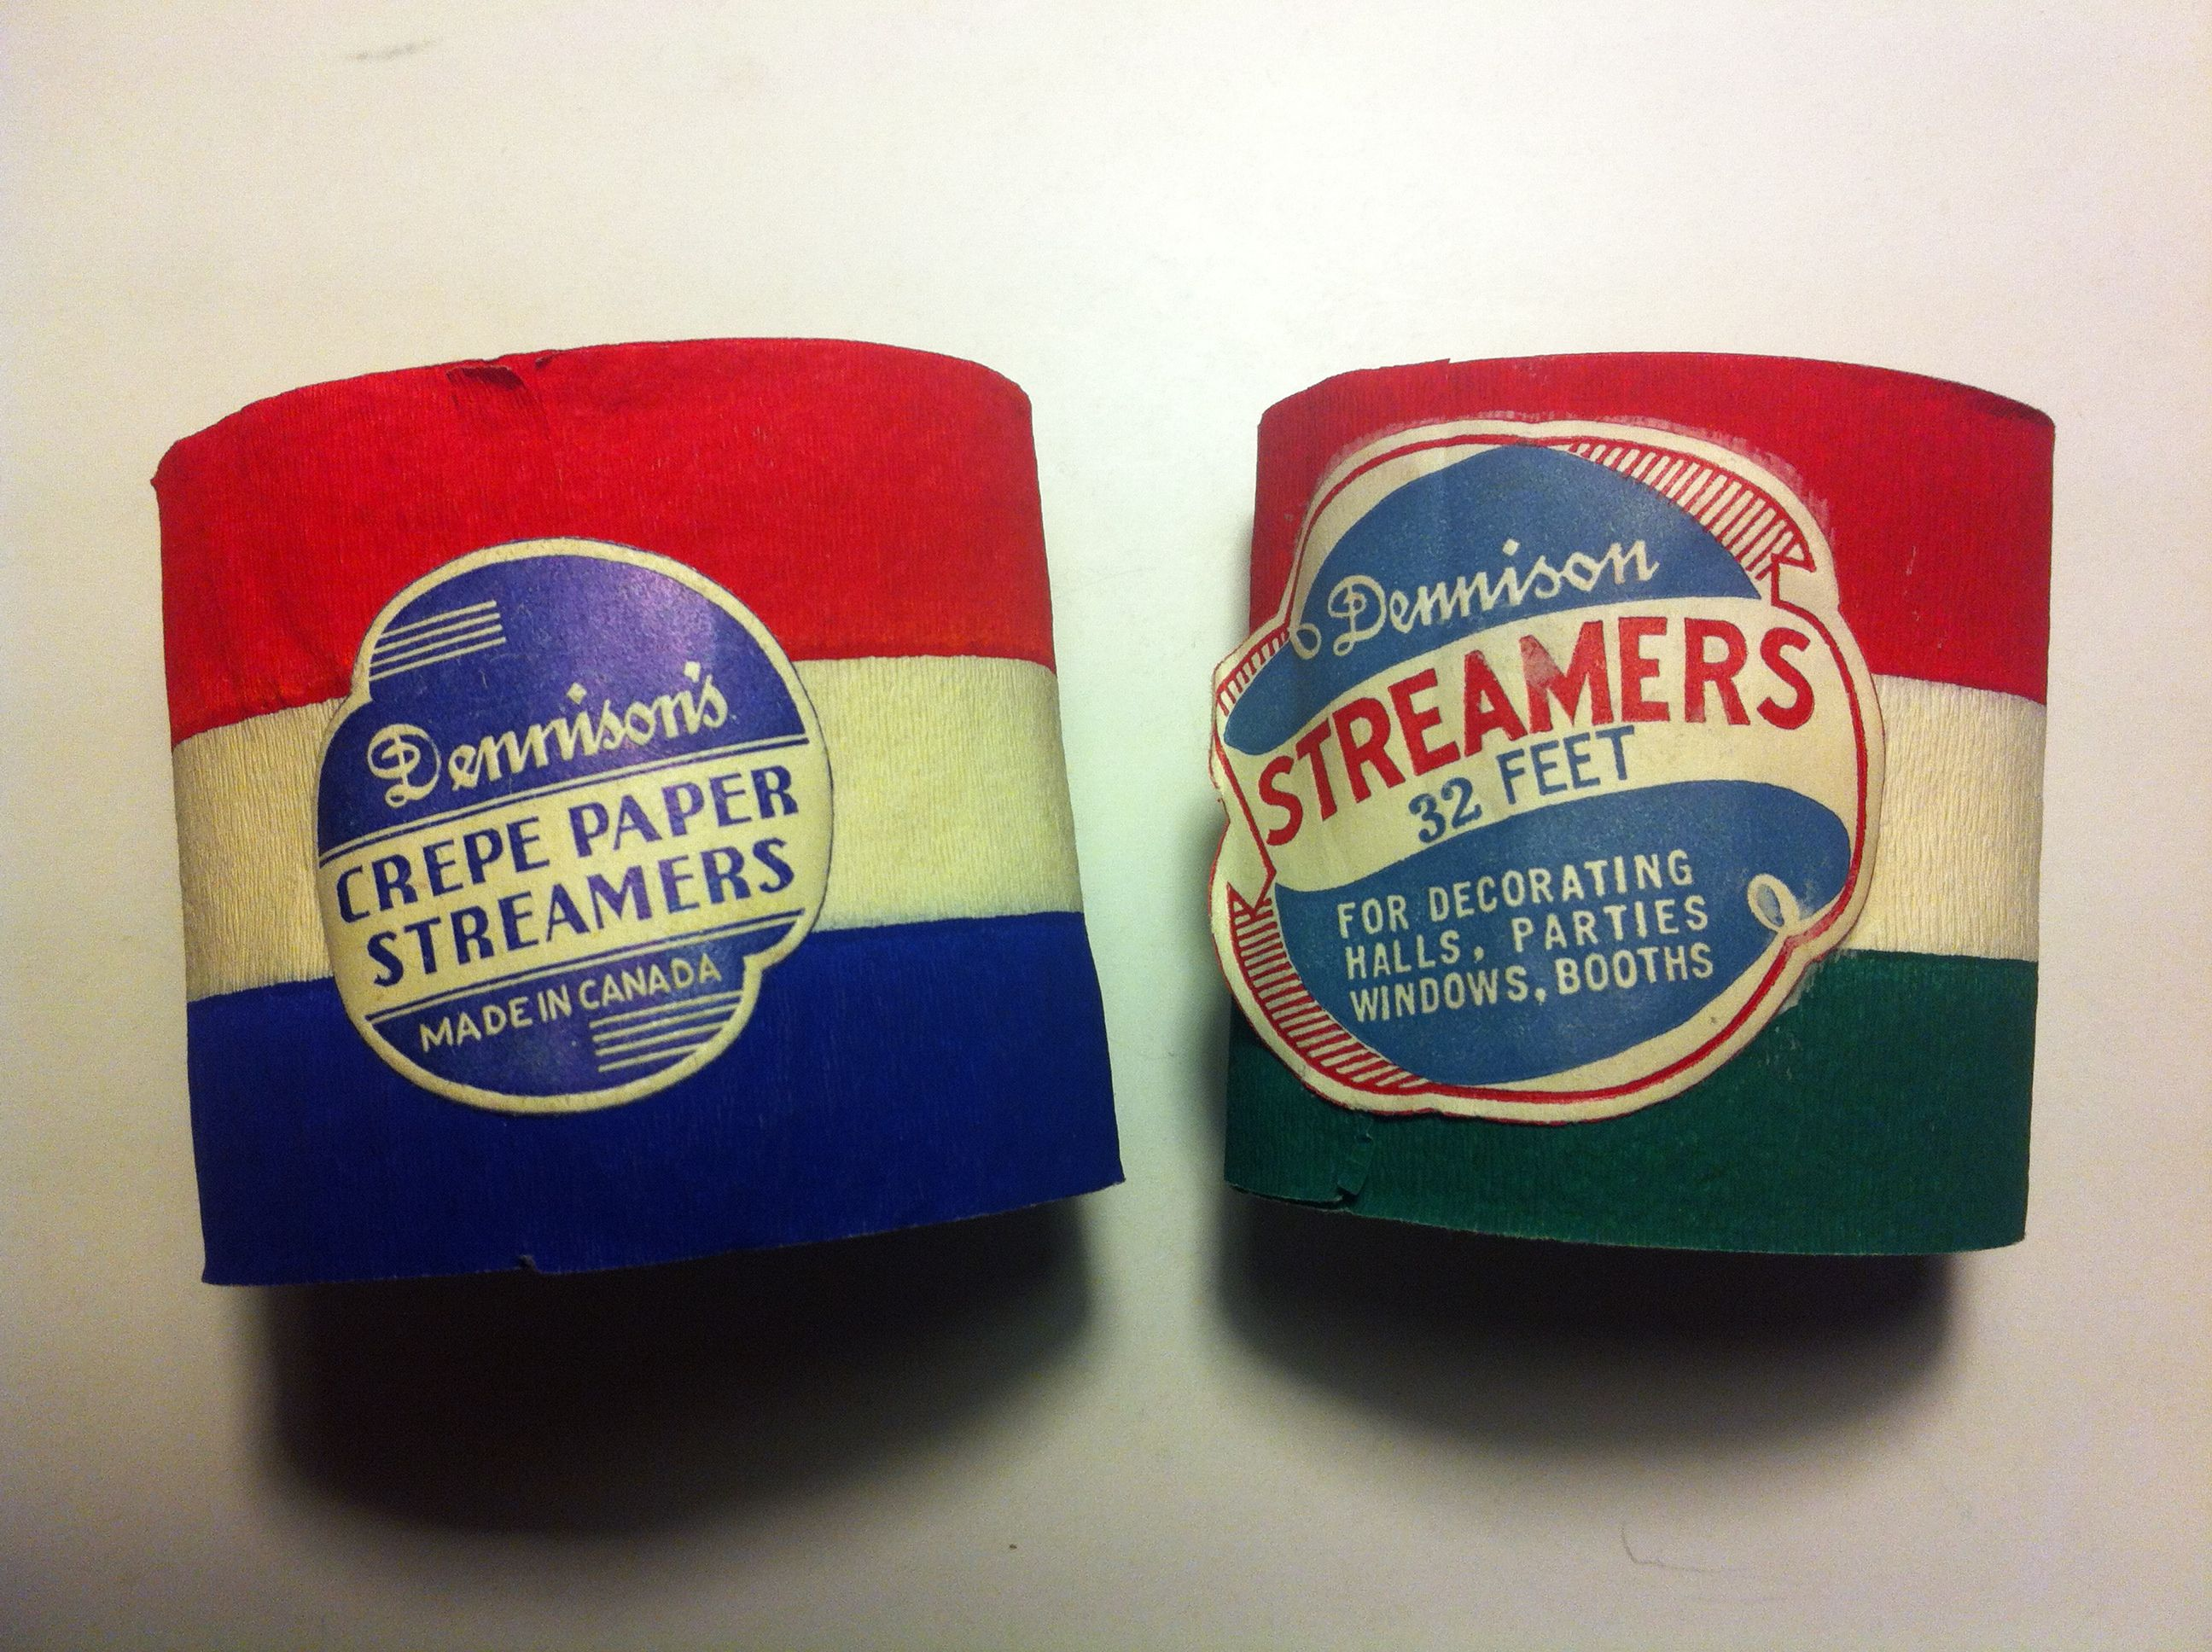 Vintage crepe paper streamers, made in Canada by Dennison.